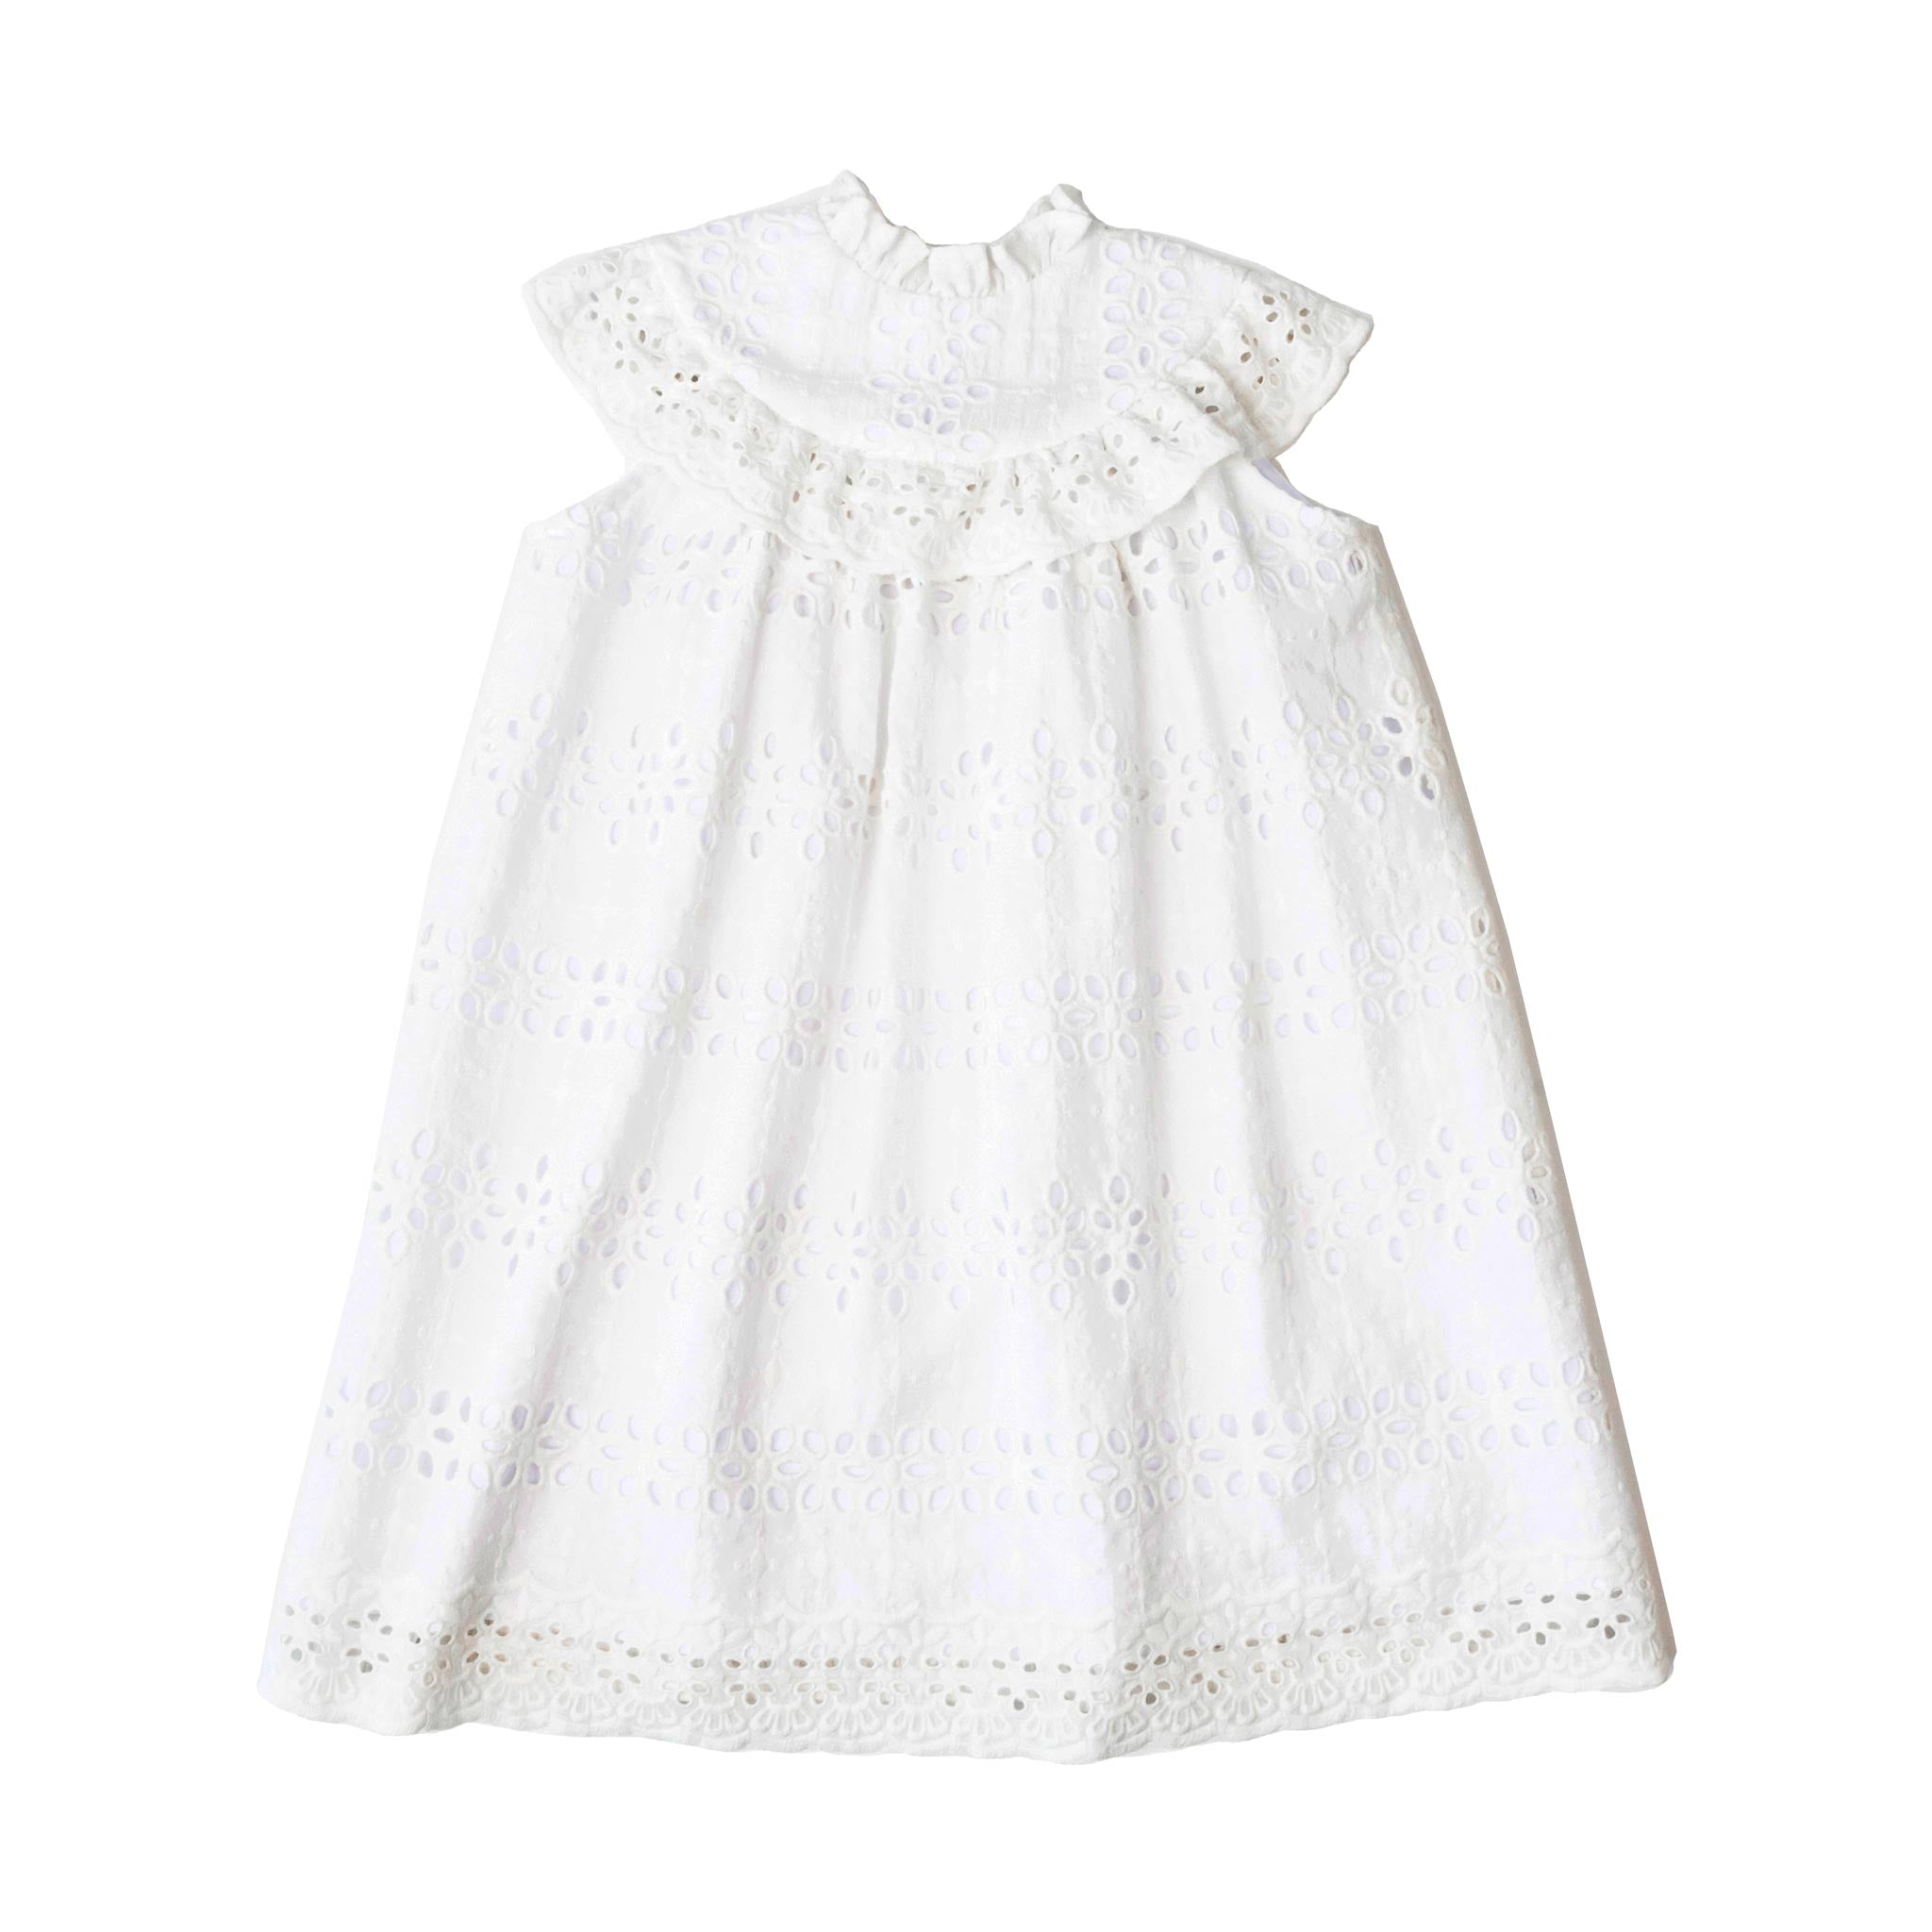 Vivienne Dress - White Eyelet